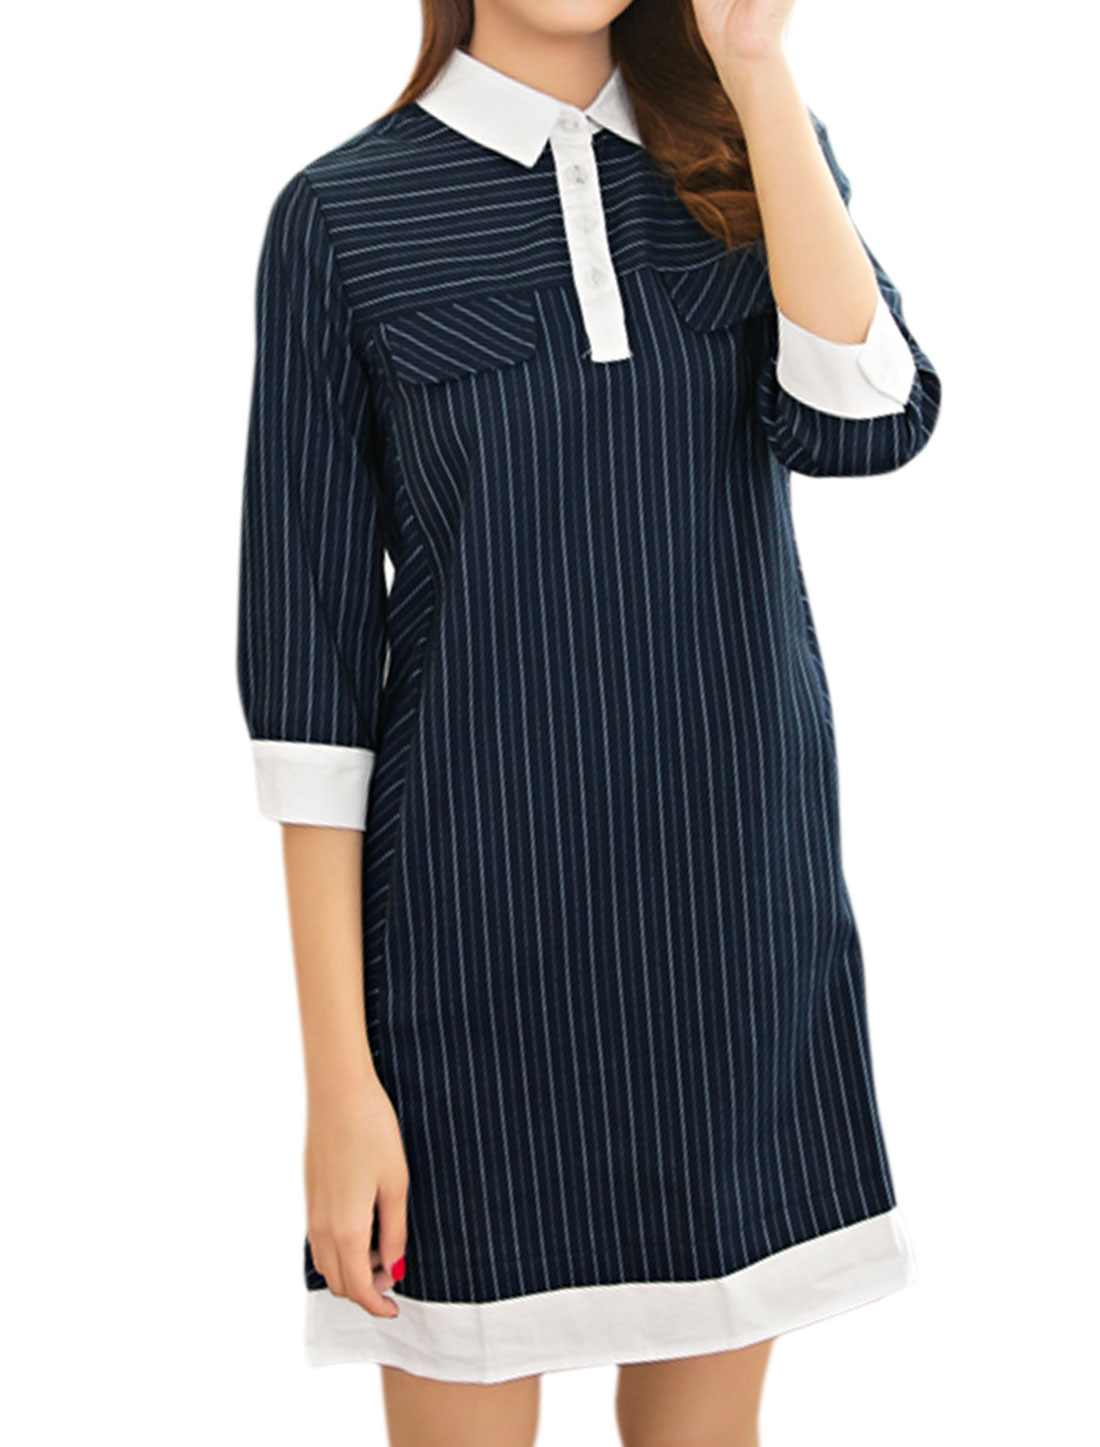 Women 3/4 Sleeves Half Placket Color Block Paneled Striped Shift Dress Blue M